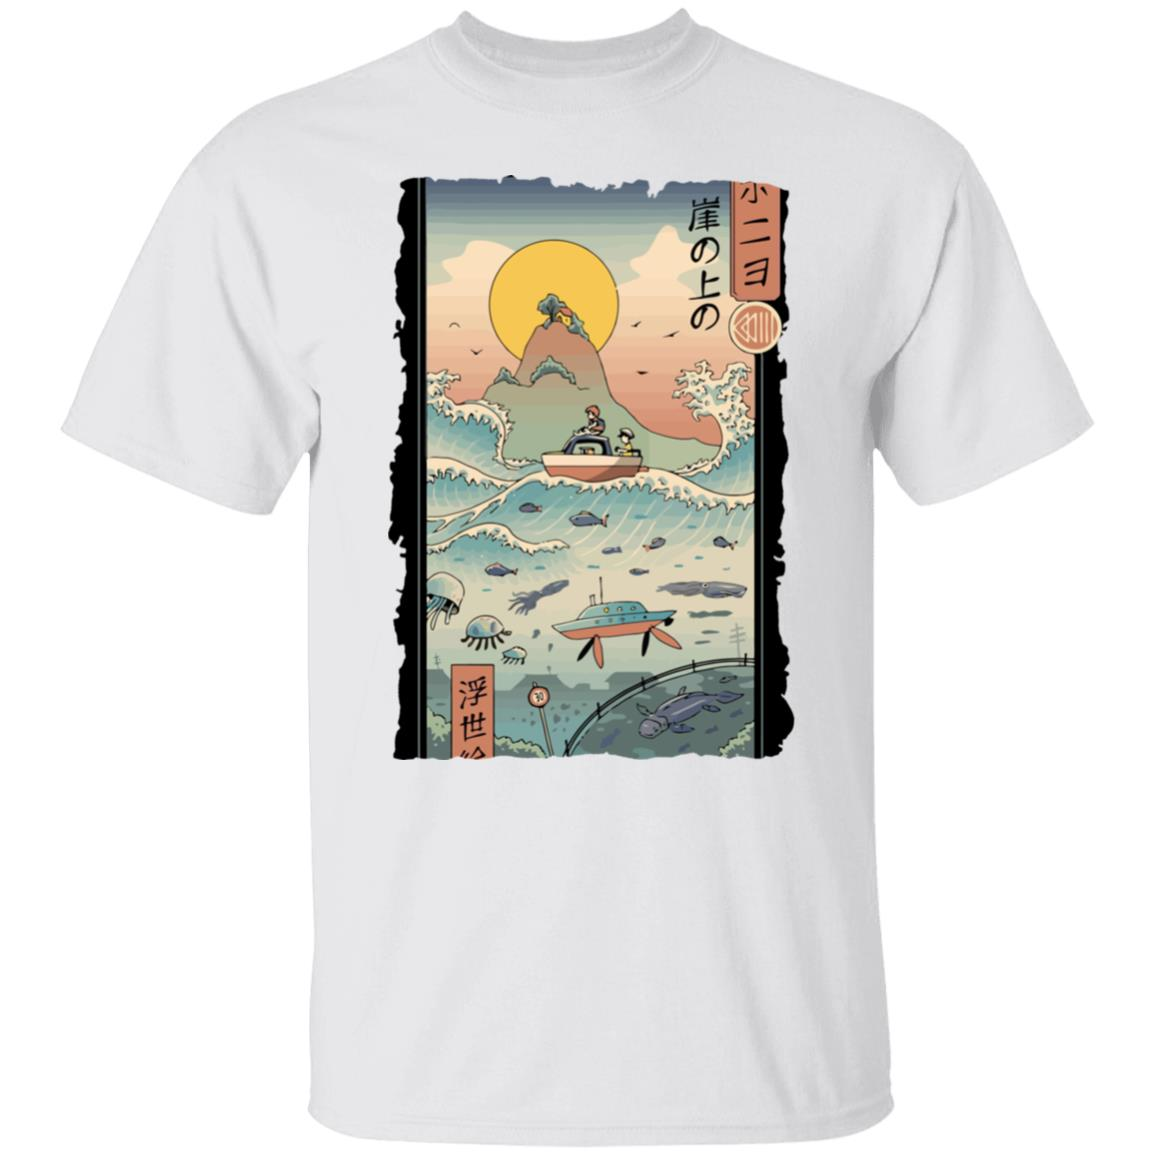 Ponyo By The Sea Classic T Shirt